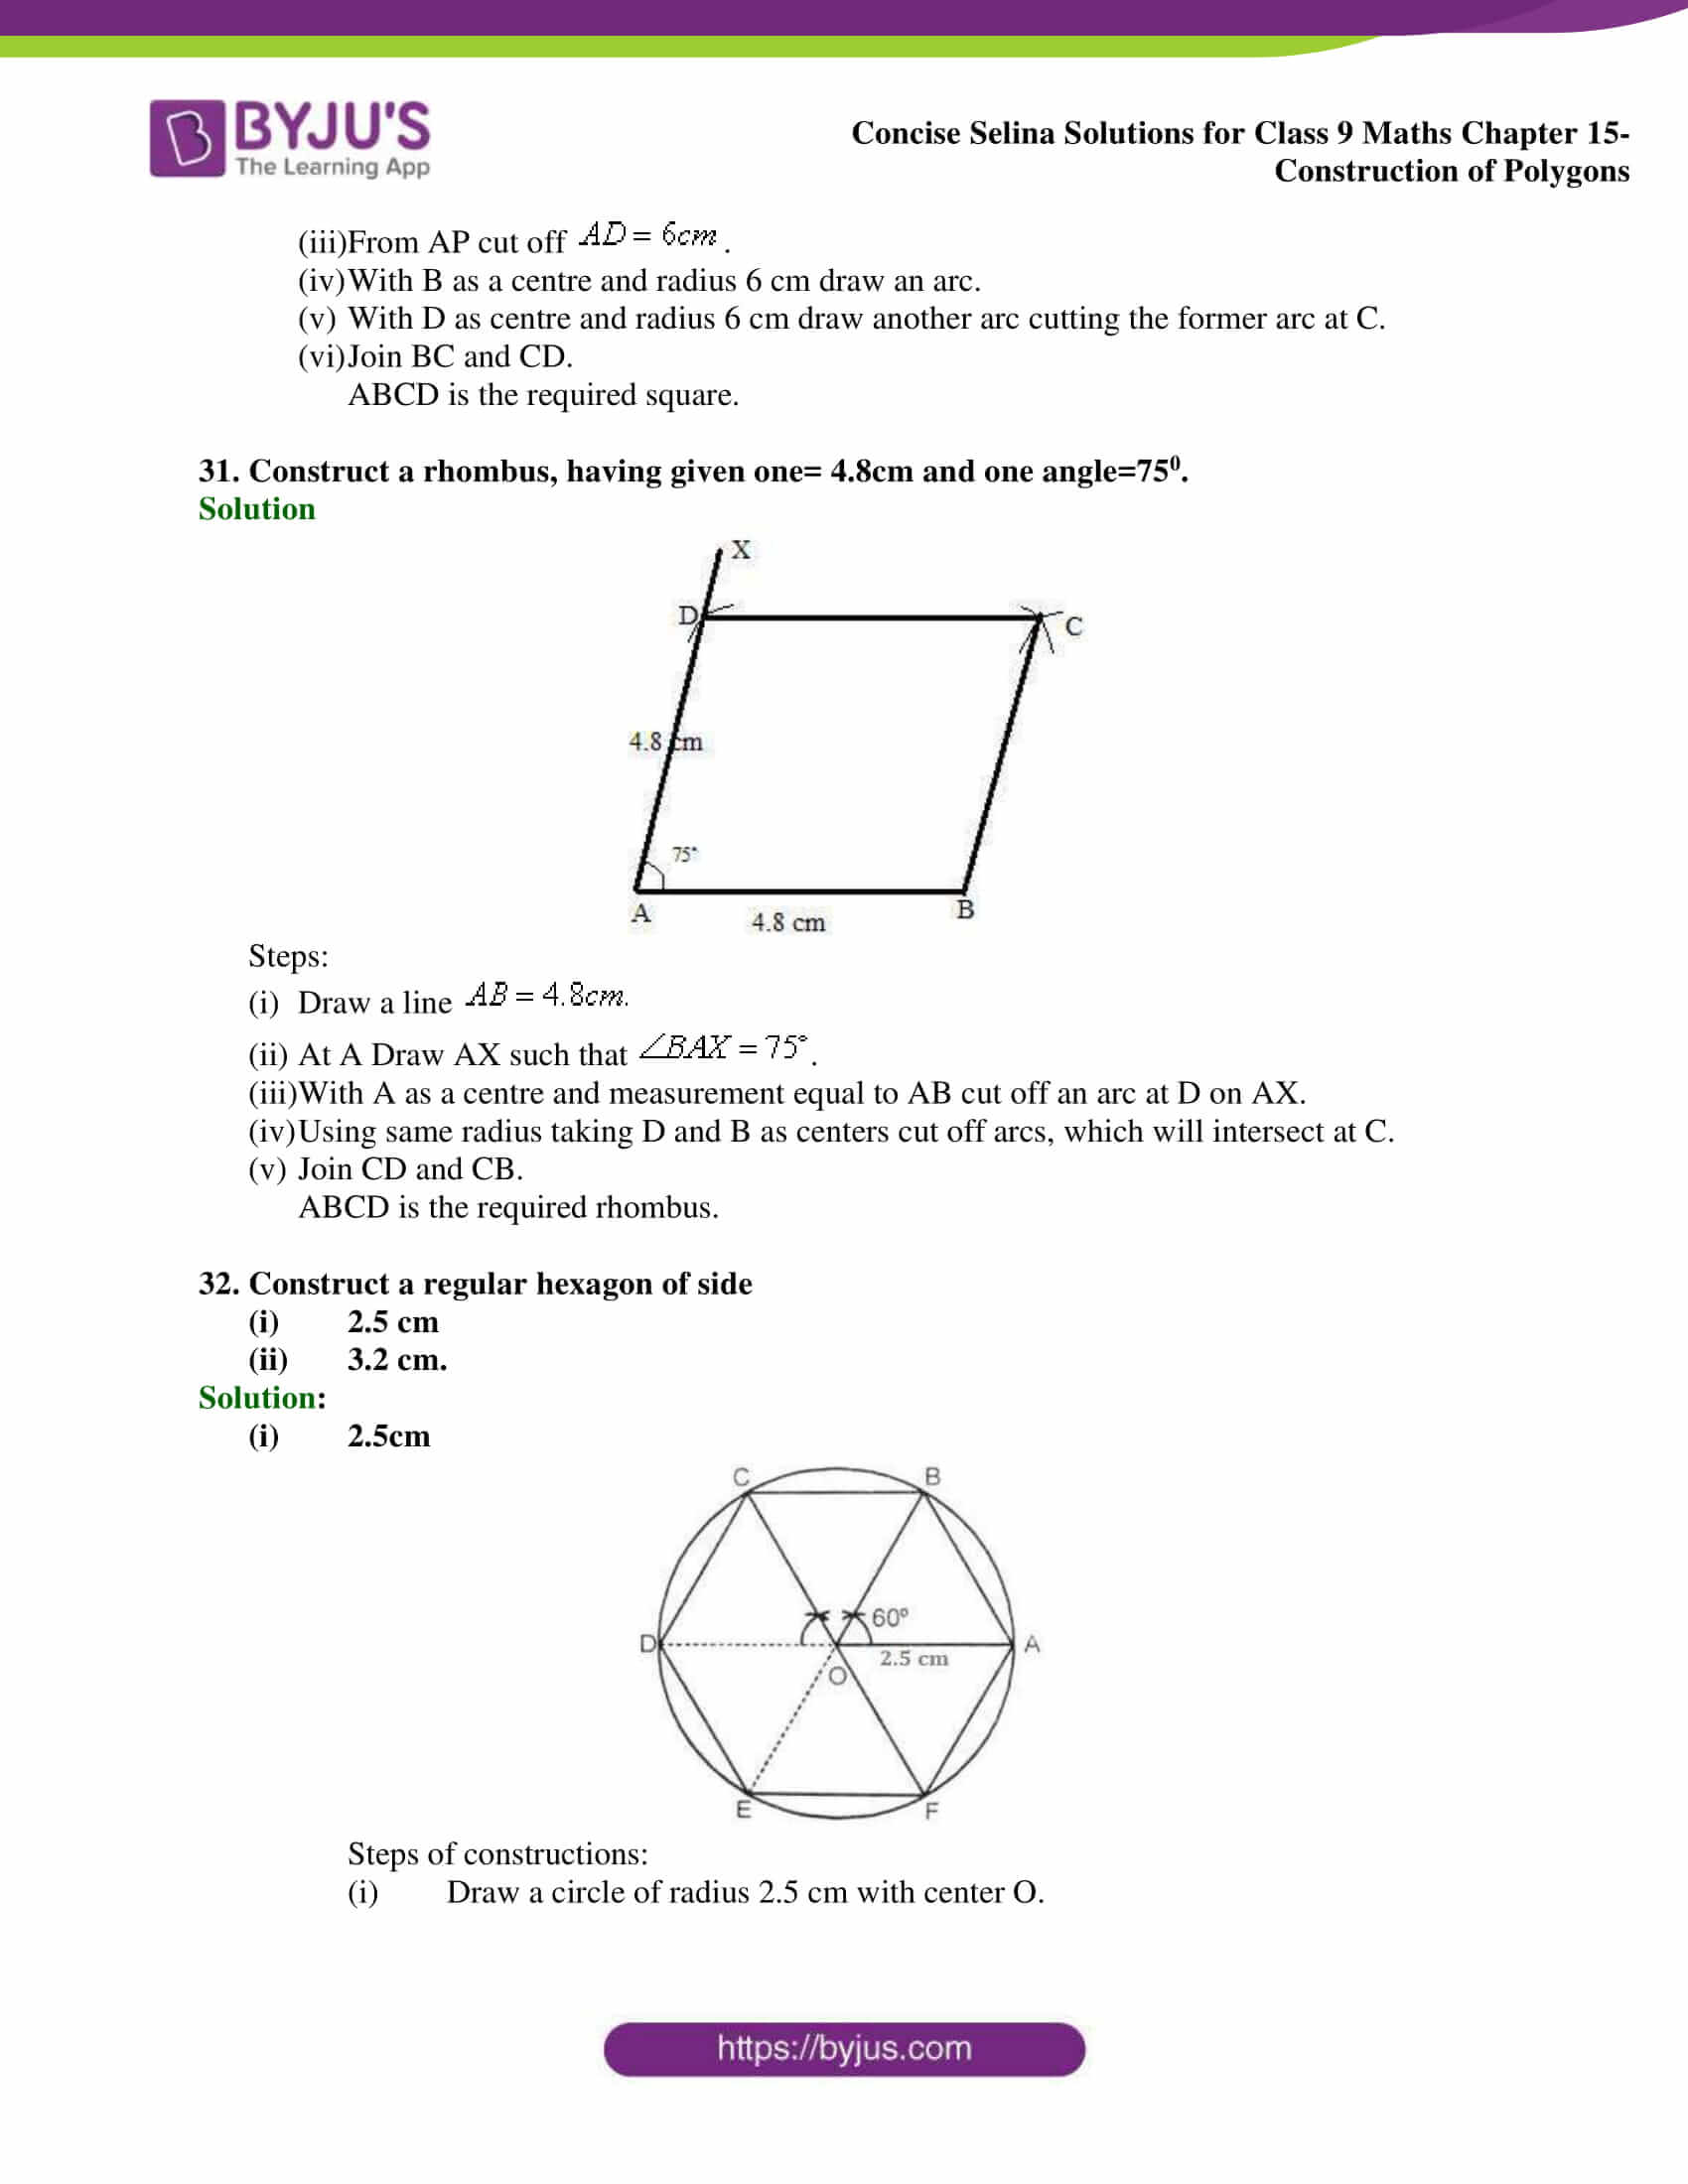 selina Solutions for Class 9 Maths Chapter 15 part 16